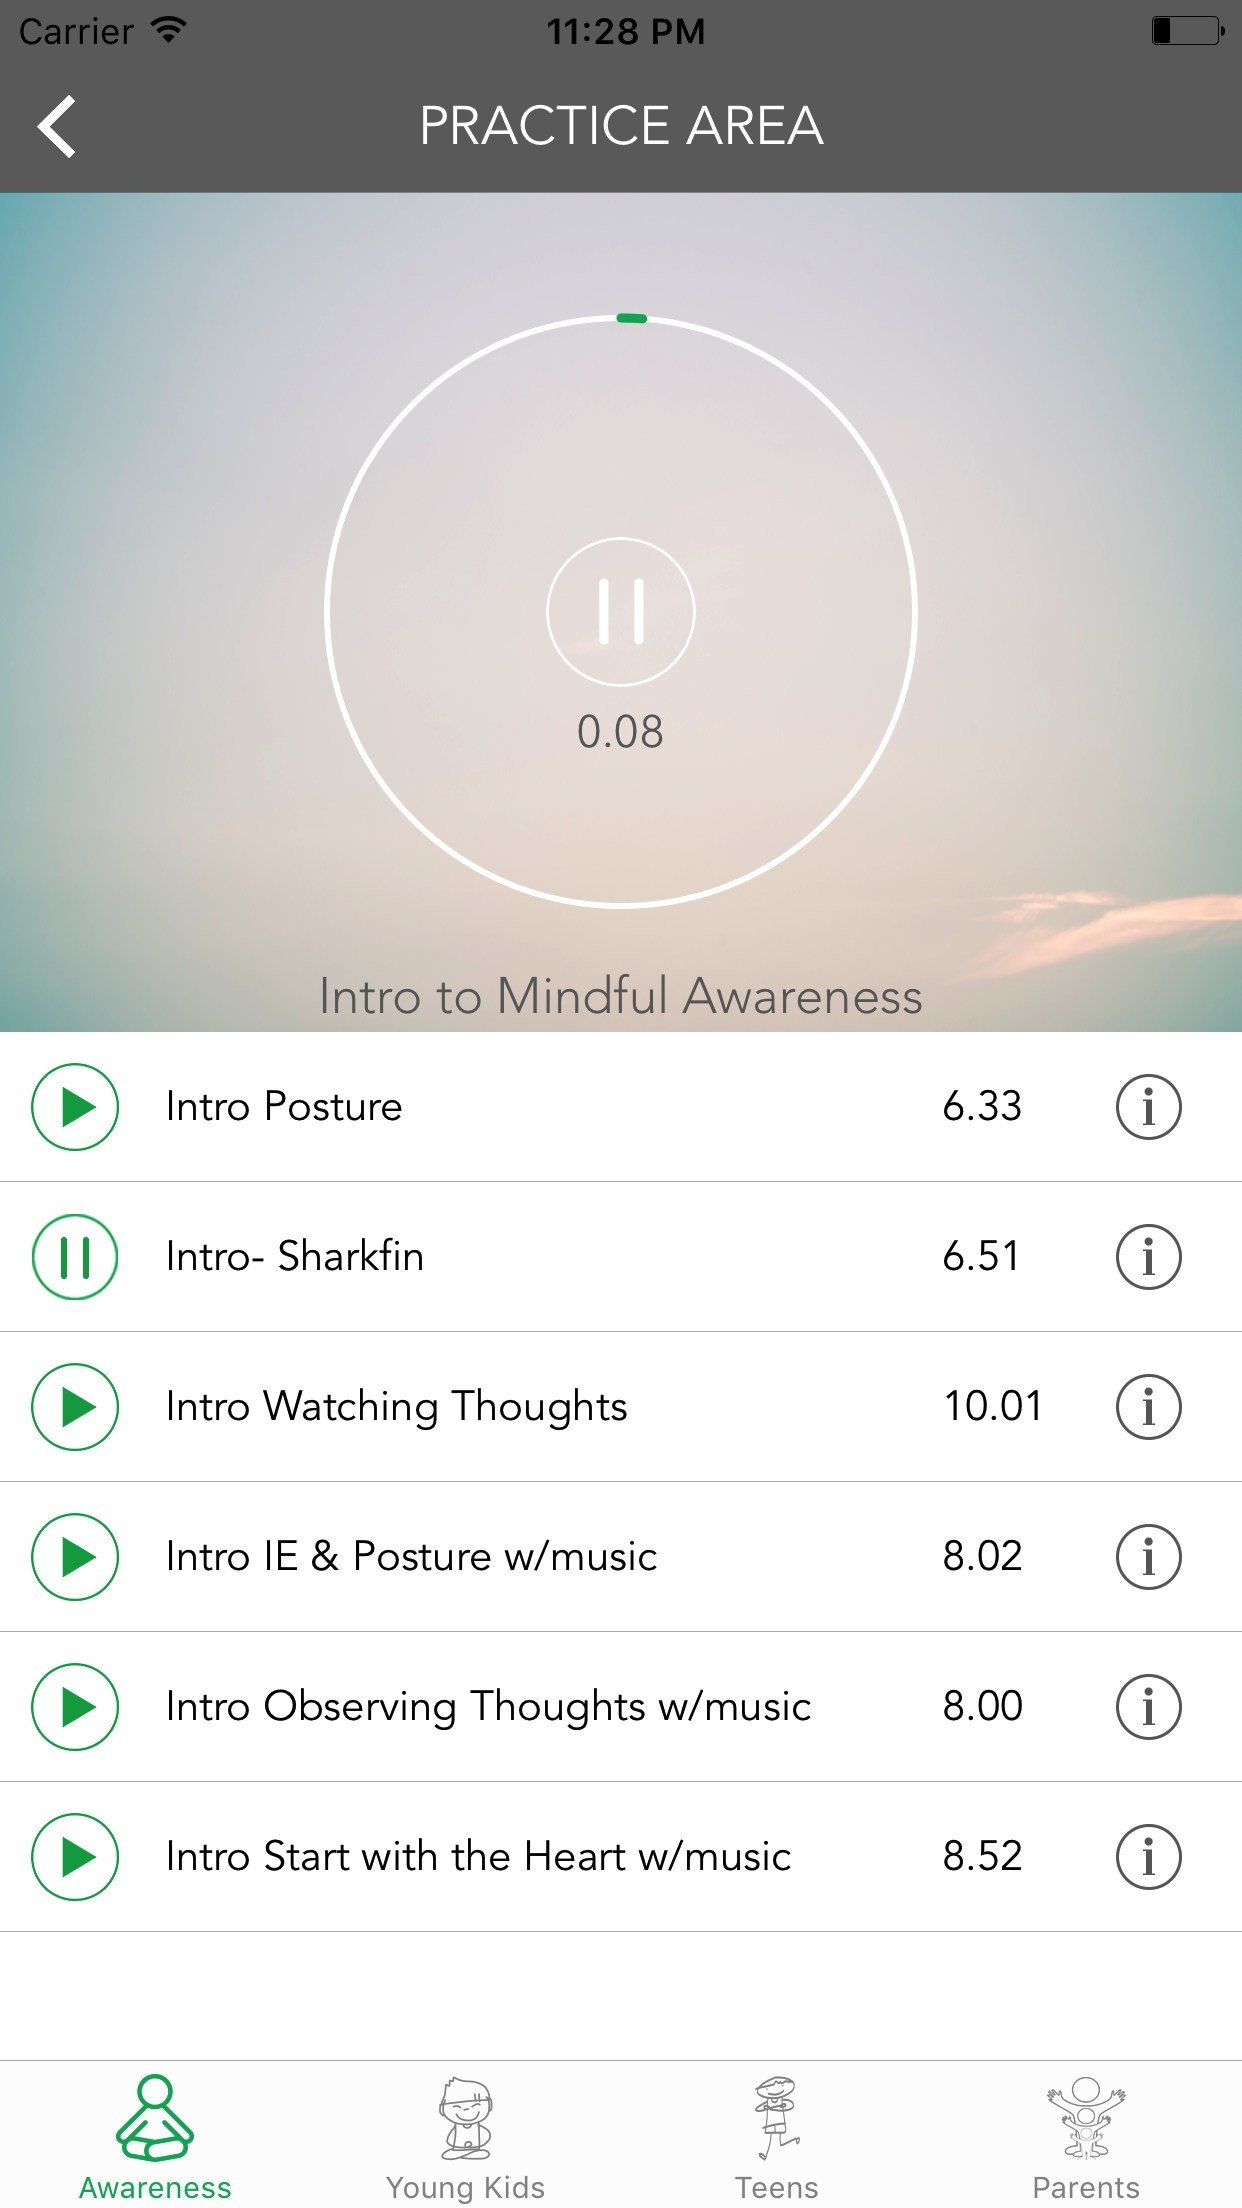 Daily mindfulness practice can help combat stress and increase academic performance